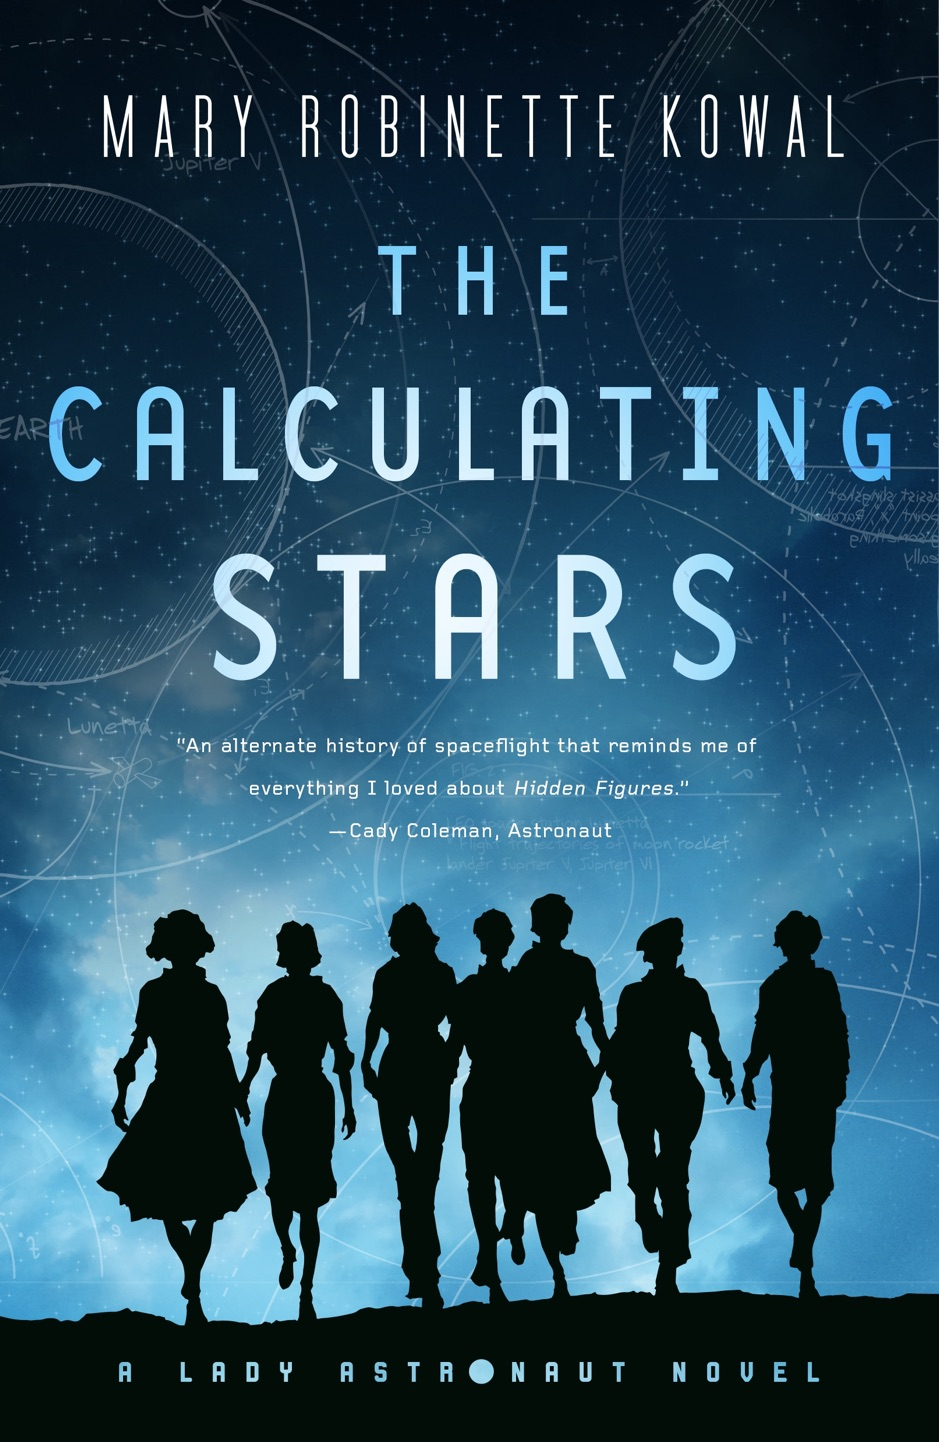 The Calculating Stars